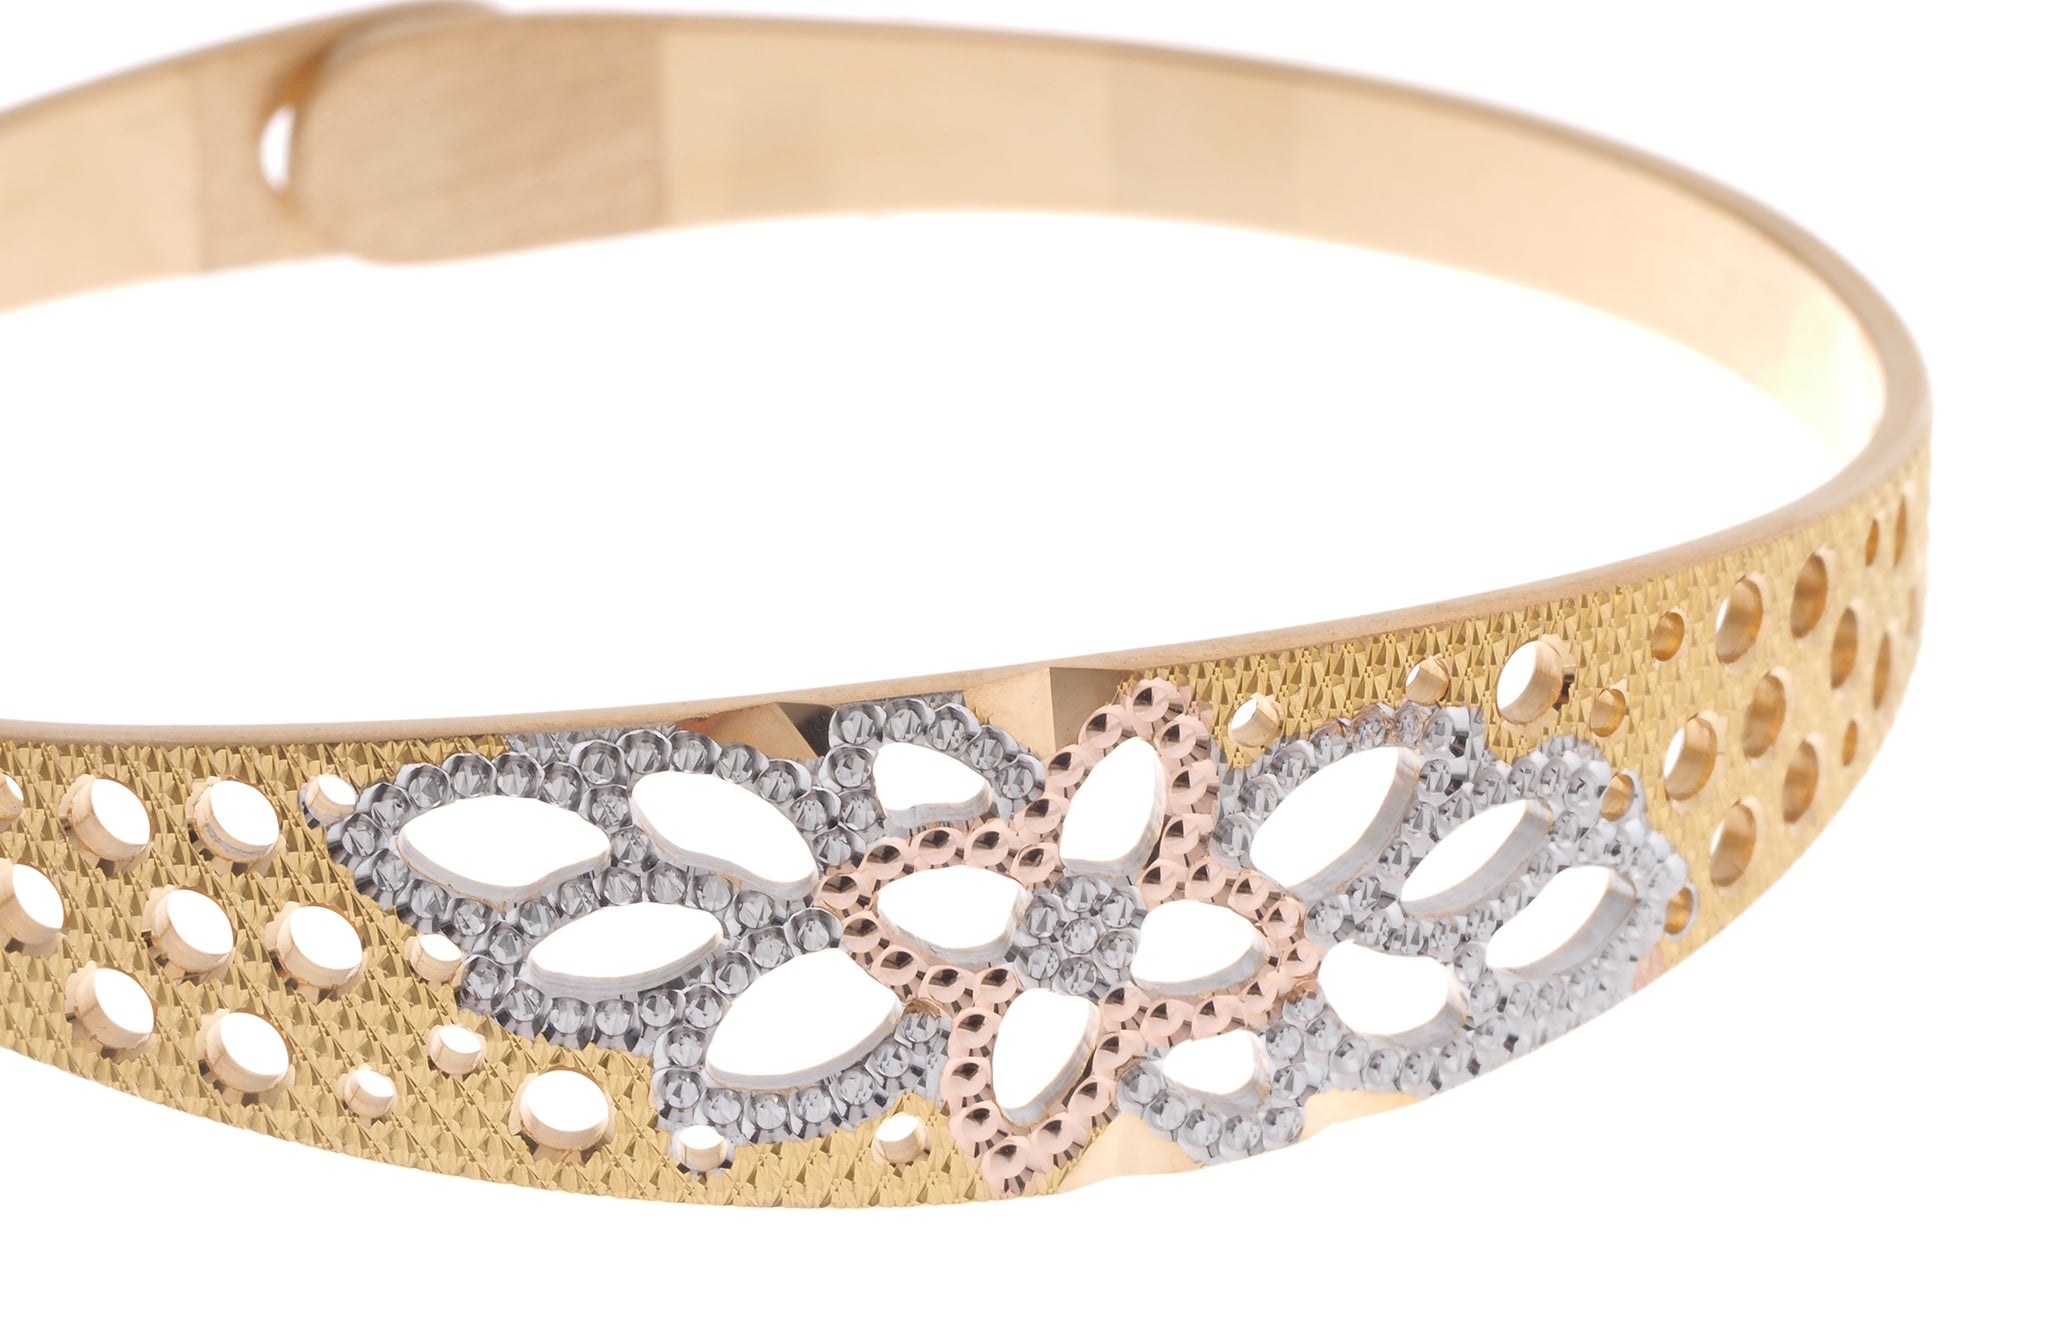 22ct Gold Bangle with diamond milled and rhodium design and clasp (23.7g) B-6932